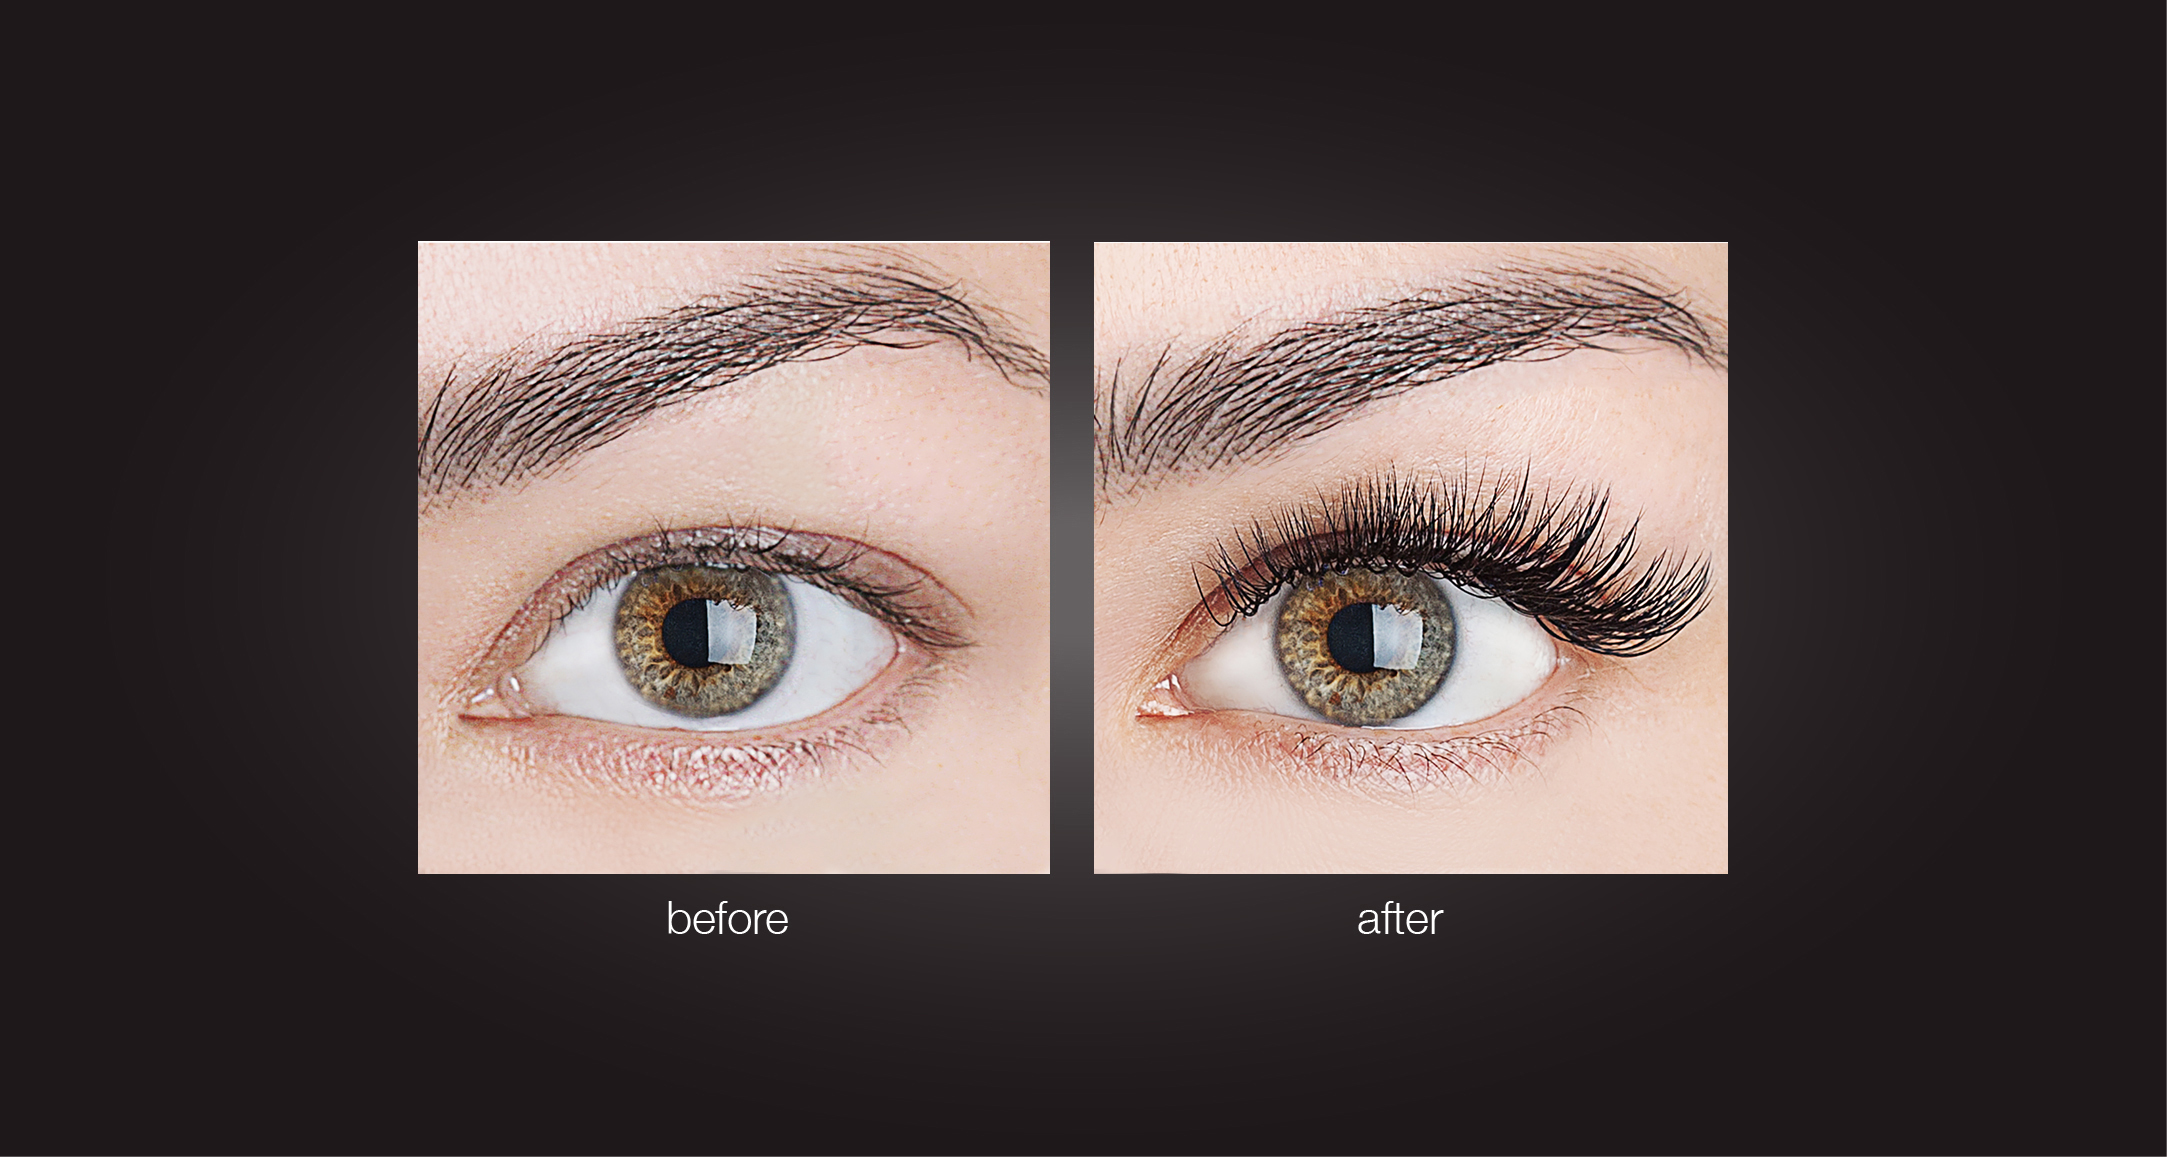 Eyelash Extensions Before After Natural 00.9